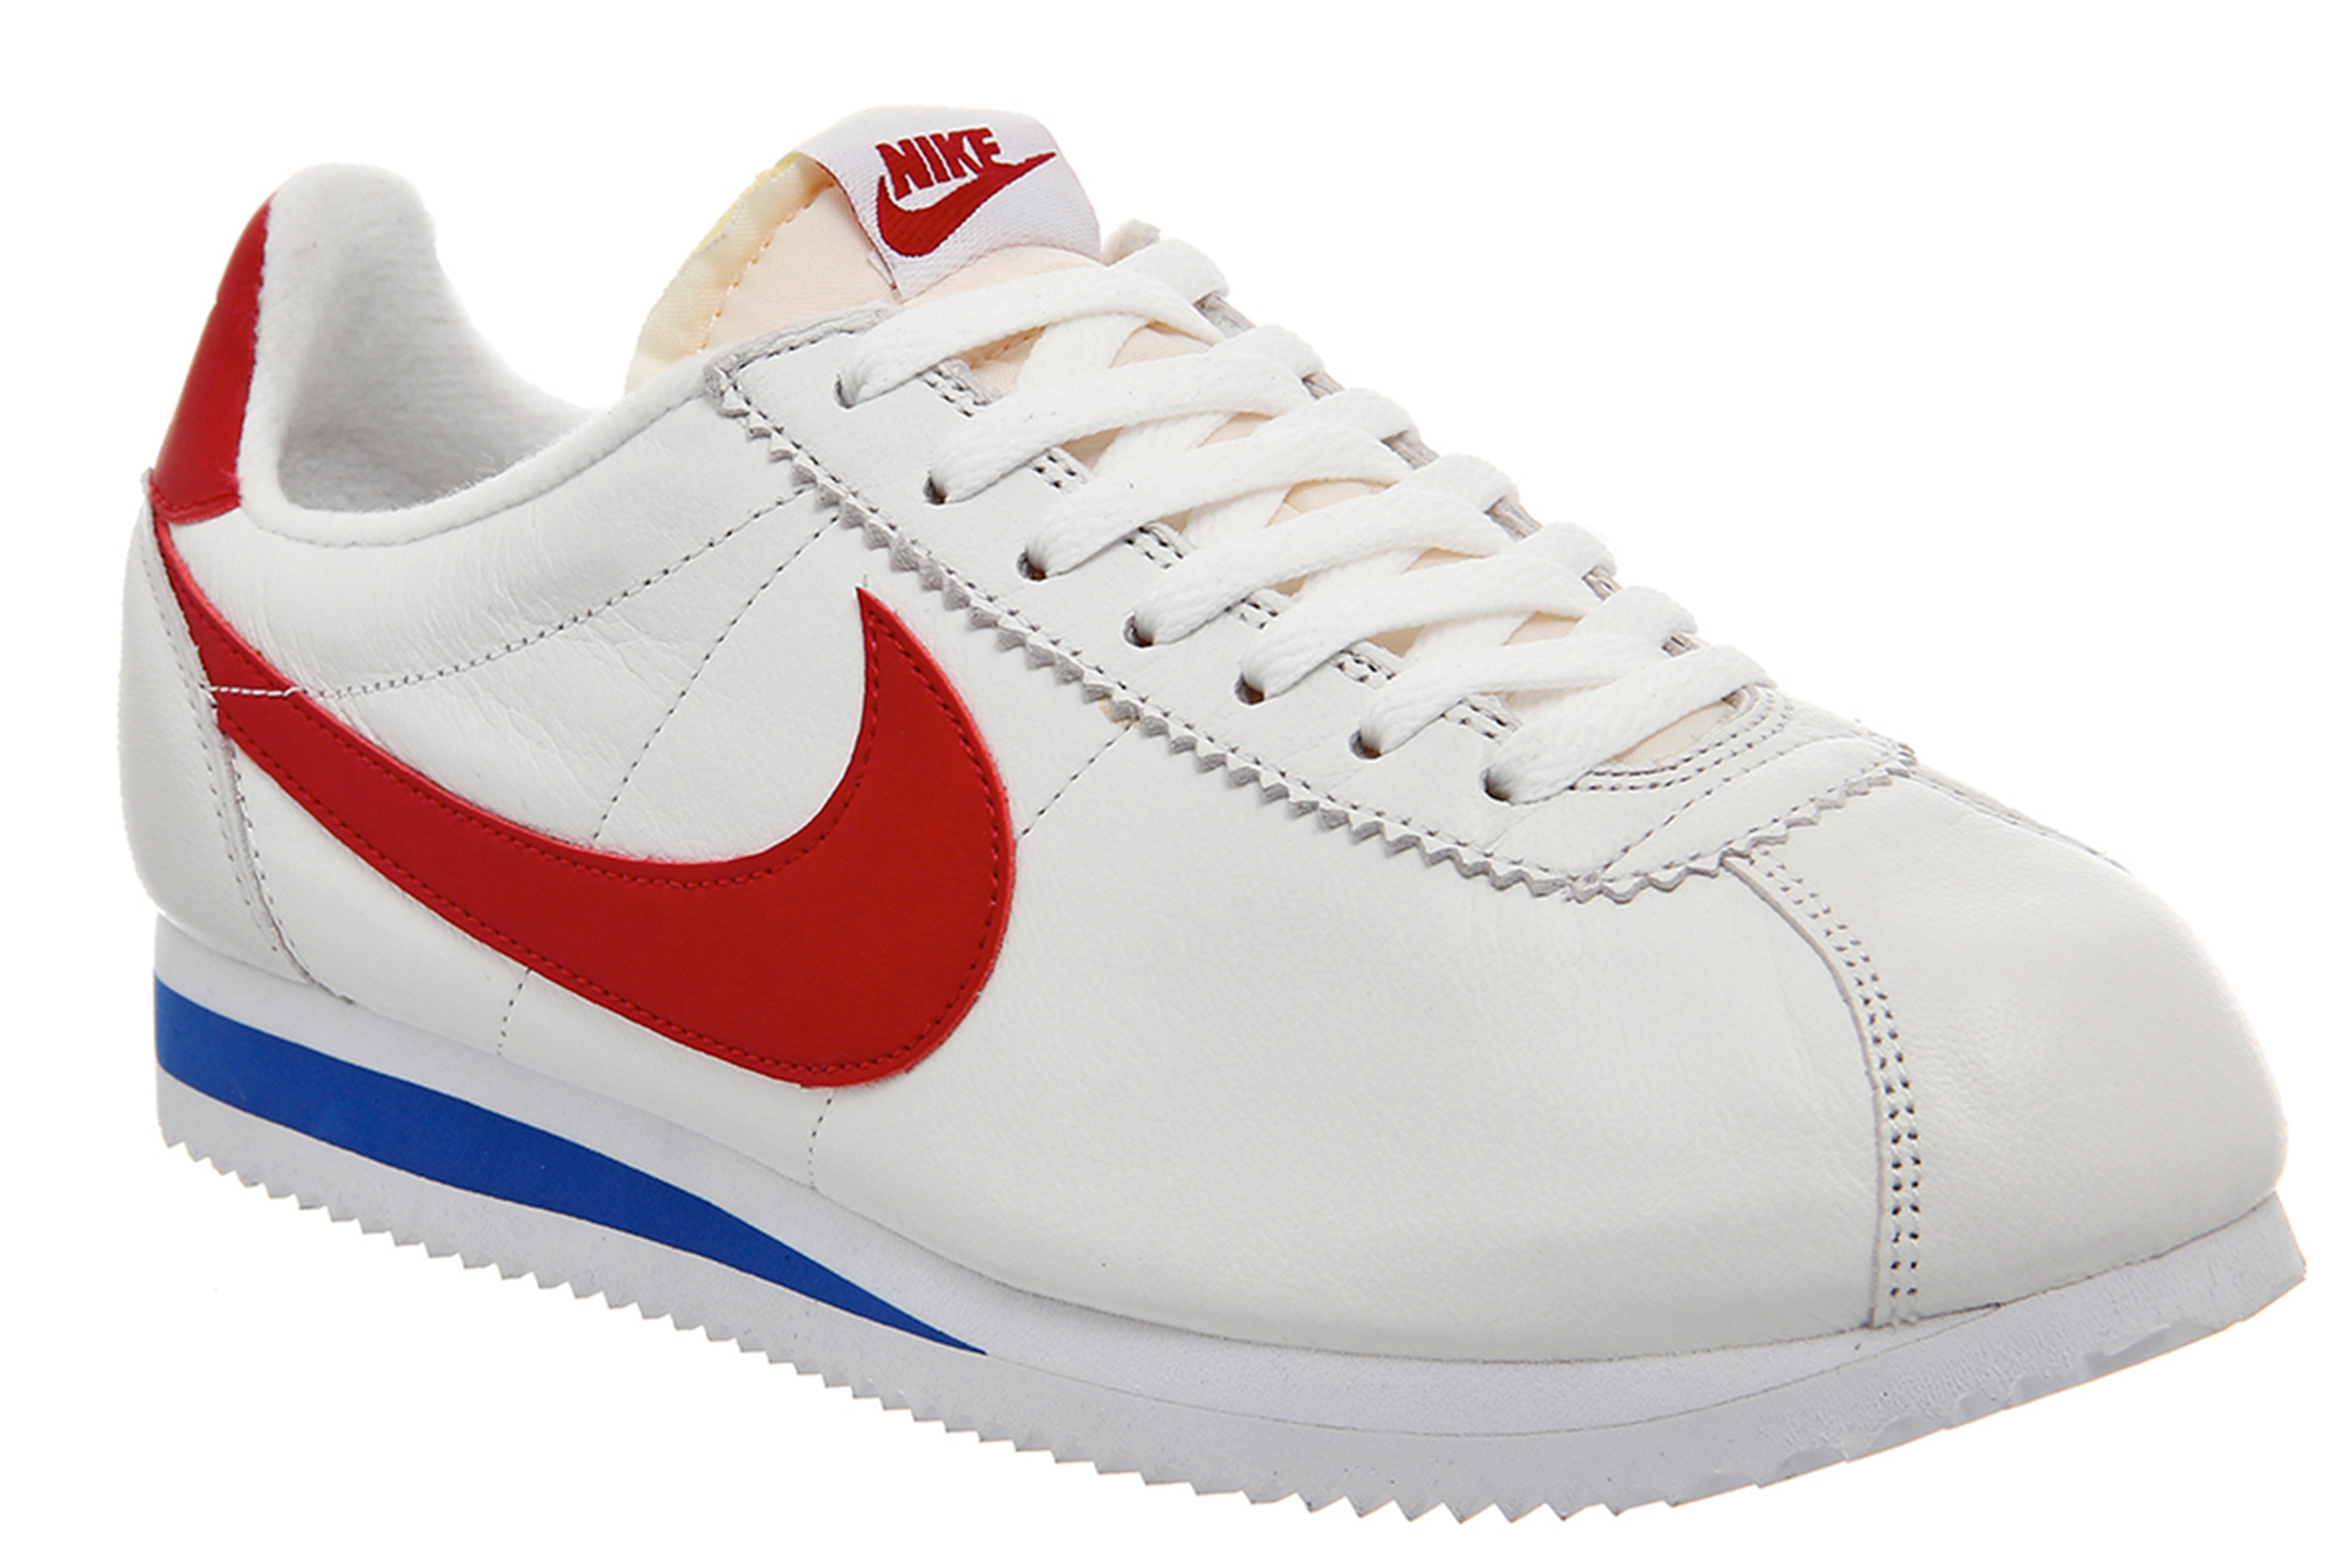 b2cfcd3c97d8 ... italy click to buy nike cortez trainers 7061a c8f28